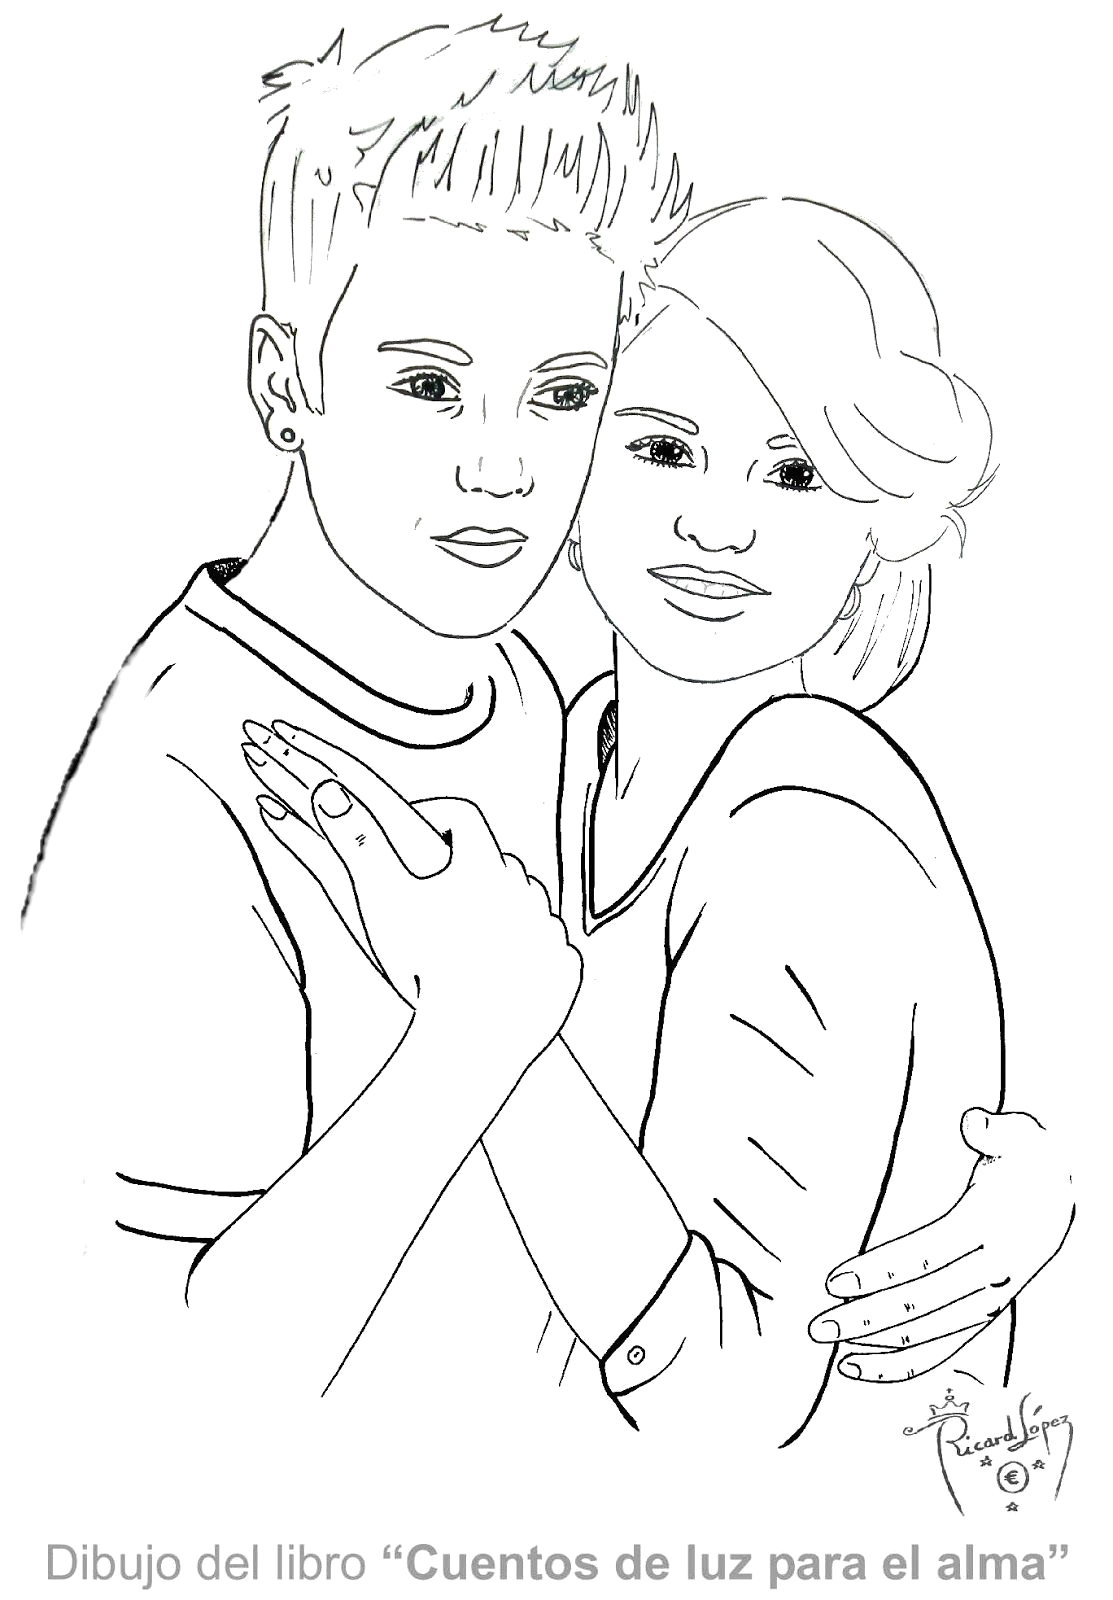 Justin Bieber and Selena Gomez Coloring Pages Justin Bieber with Selena Gomez Coloring Pages to Print